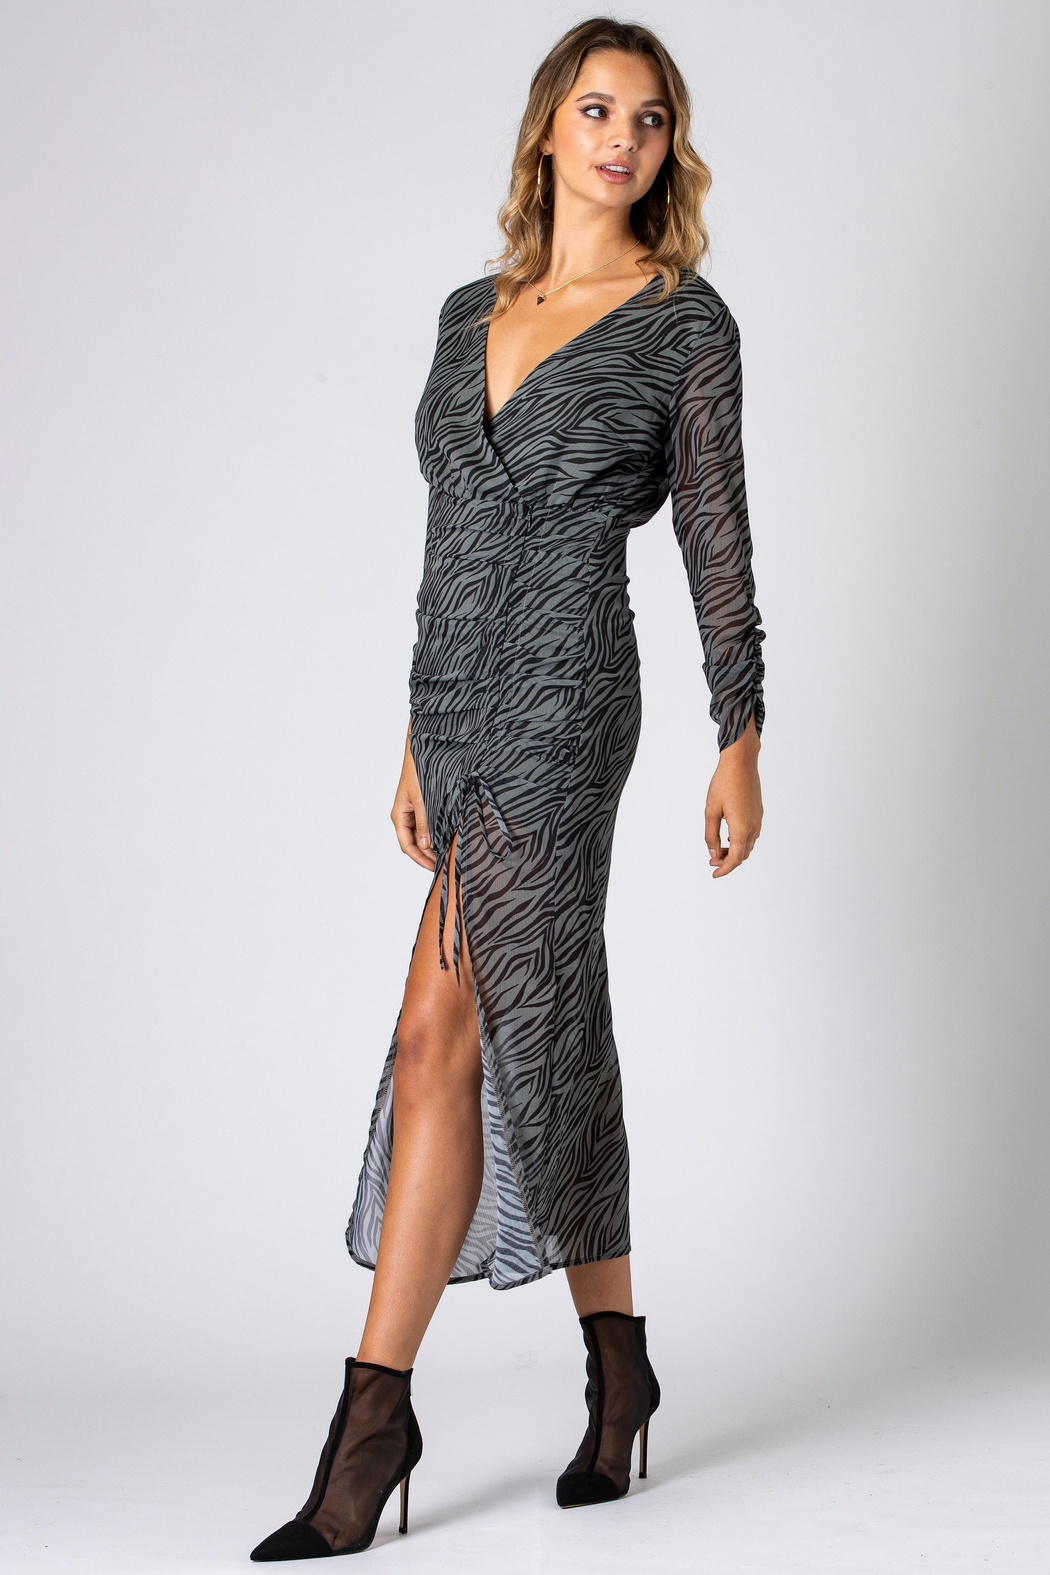 Urban Touch Zebra Print Long Sleeve Midi Dress- Khaki - Main Image